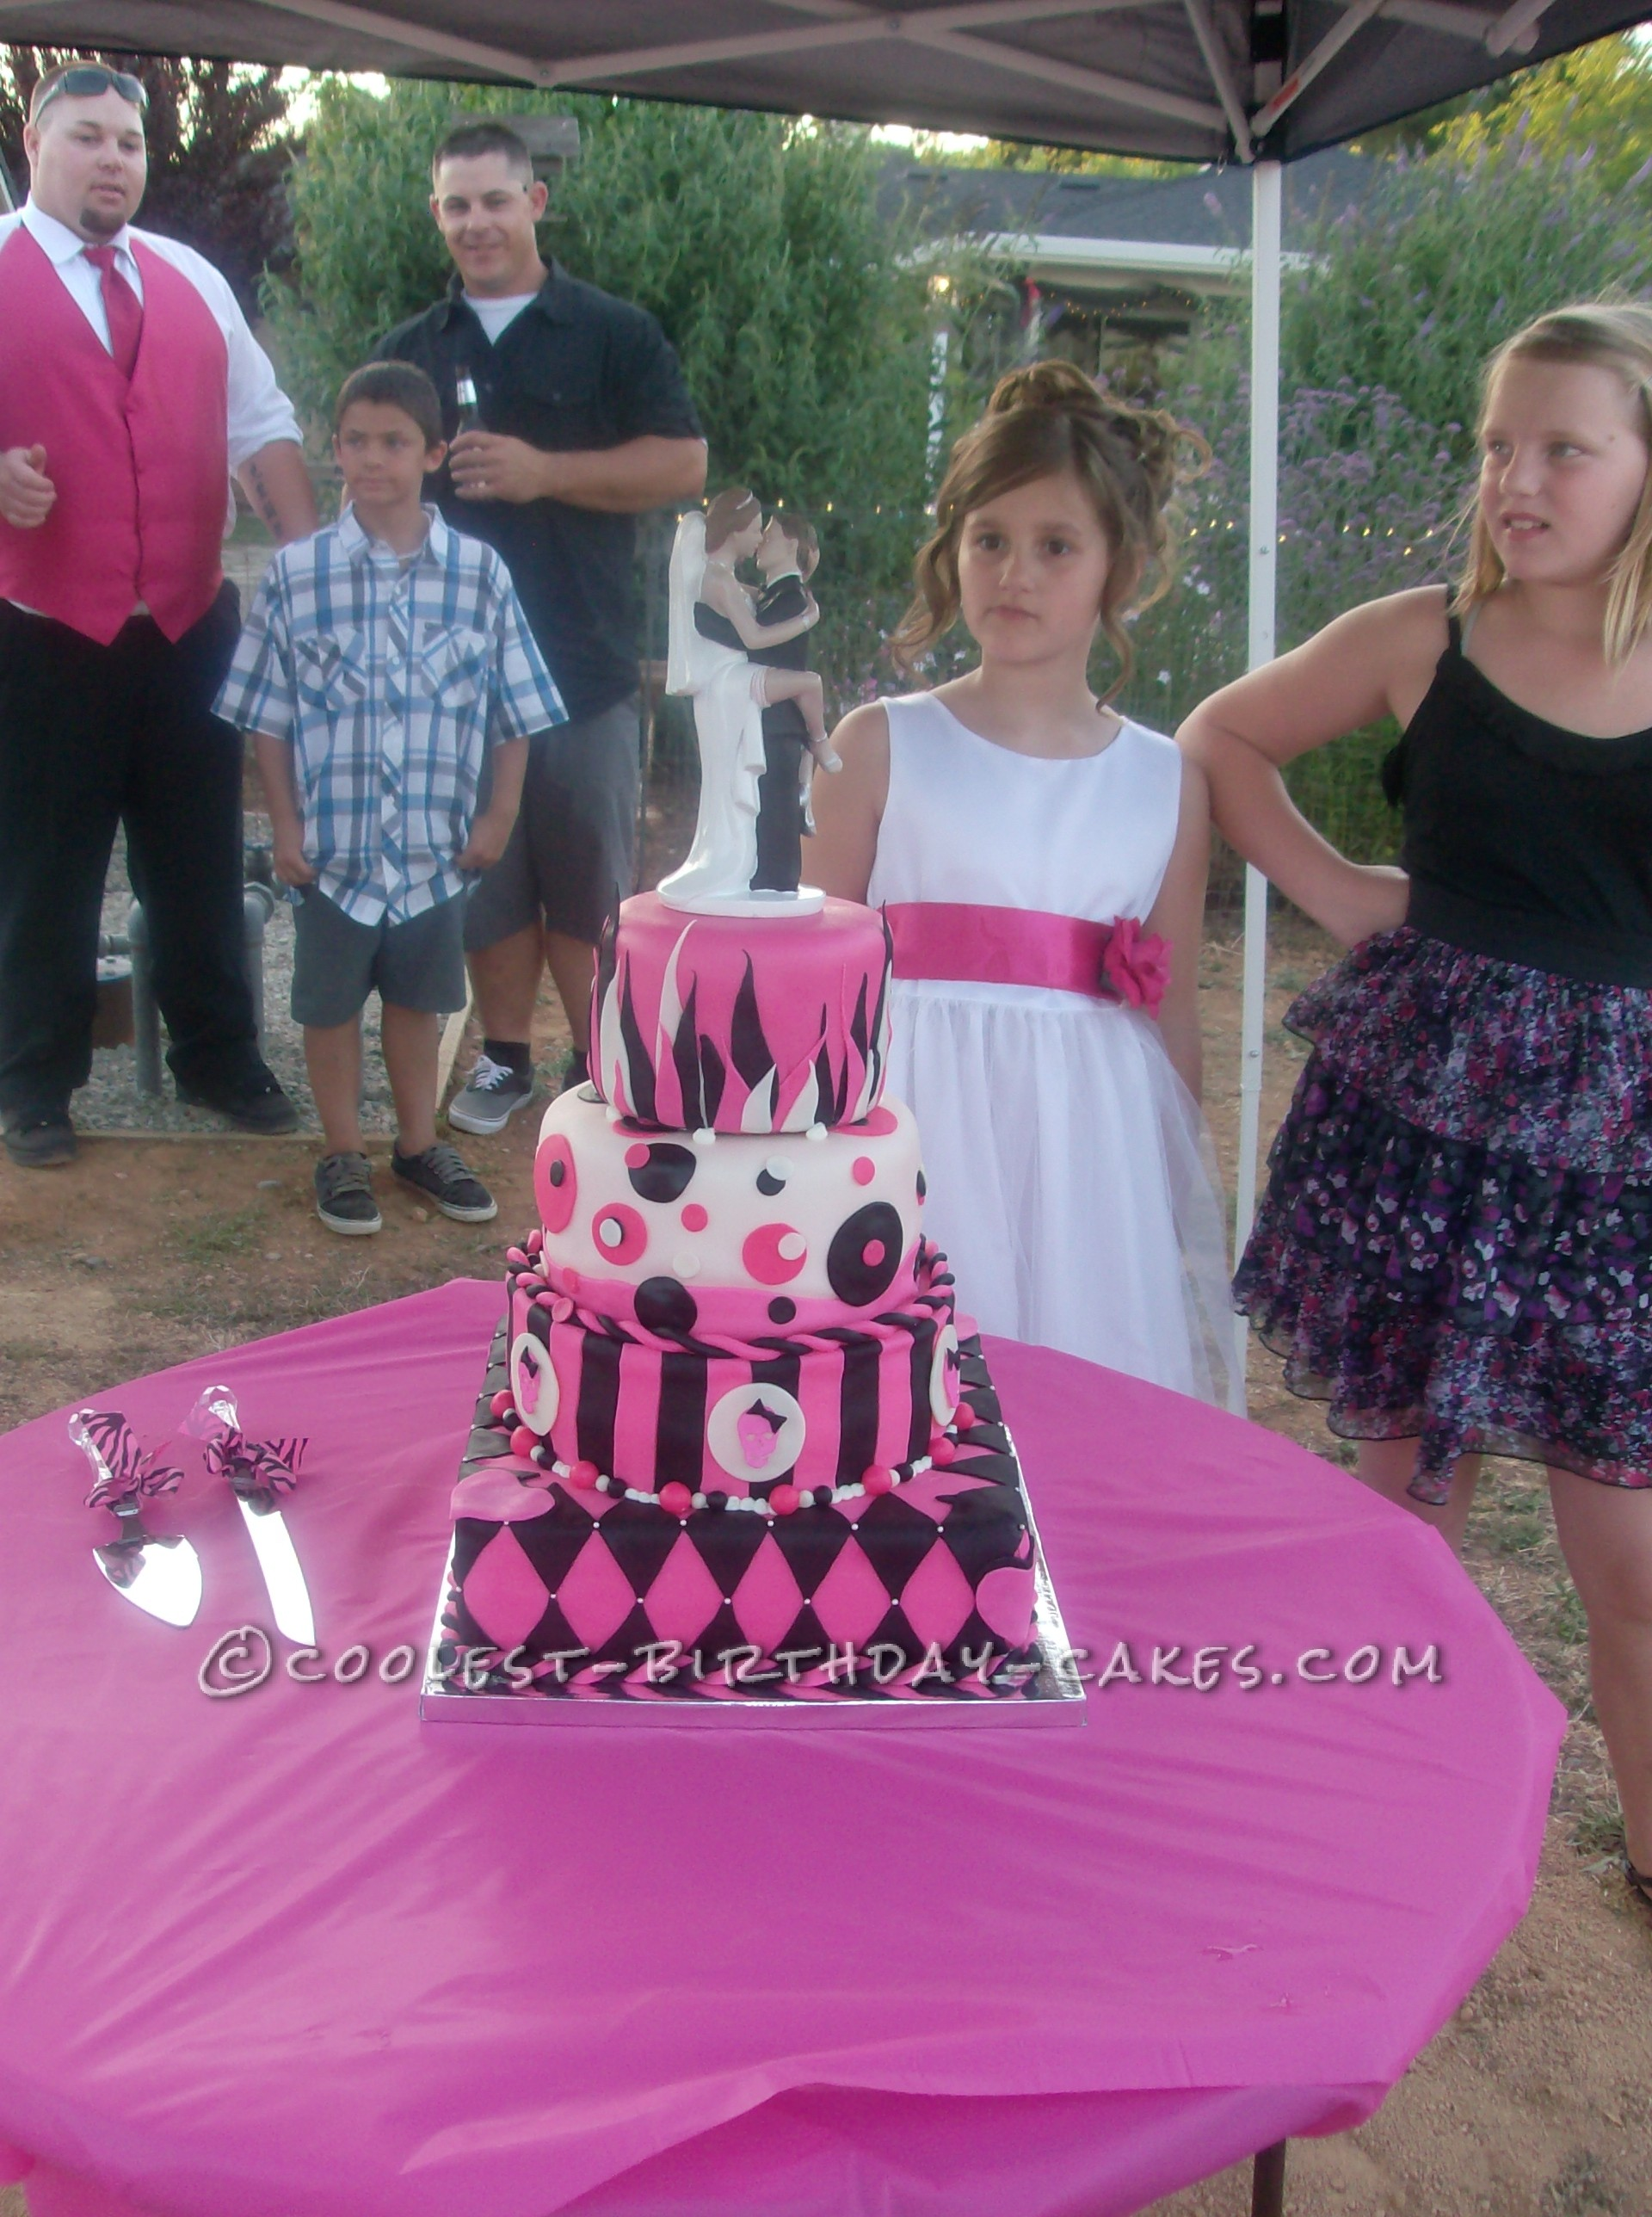 Hot Pink and Black Non-Traditional Wedding Cake